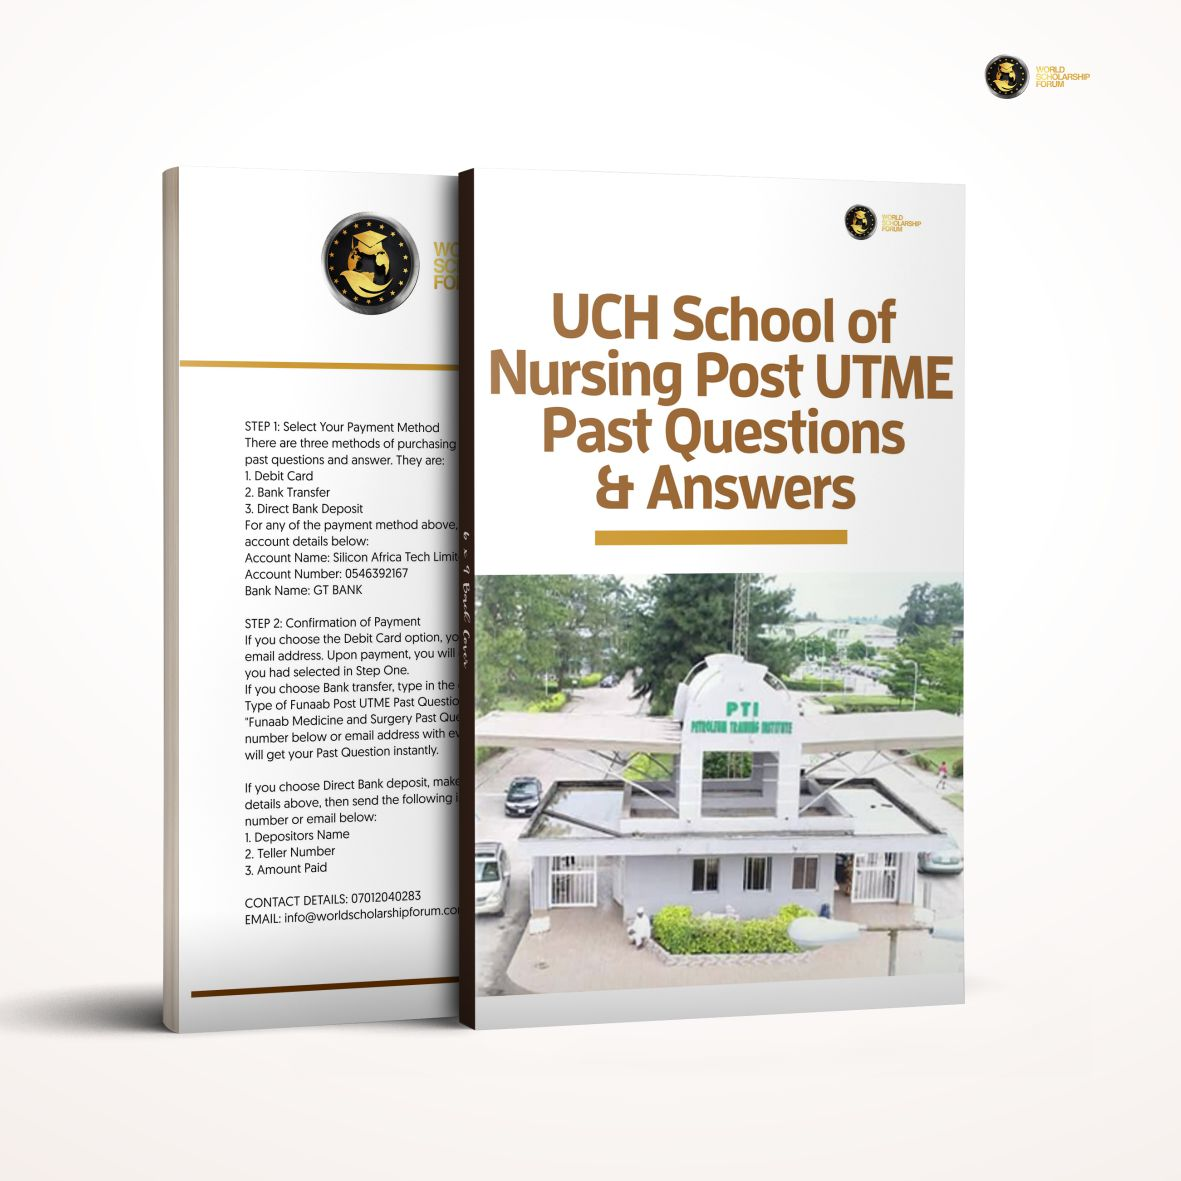 UCH School of Nursing Post UTME PAST Questions and Answers